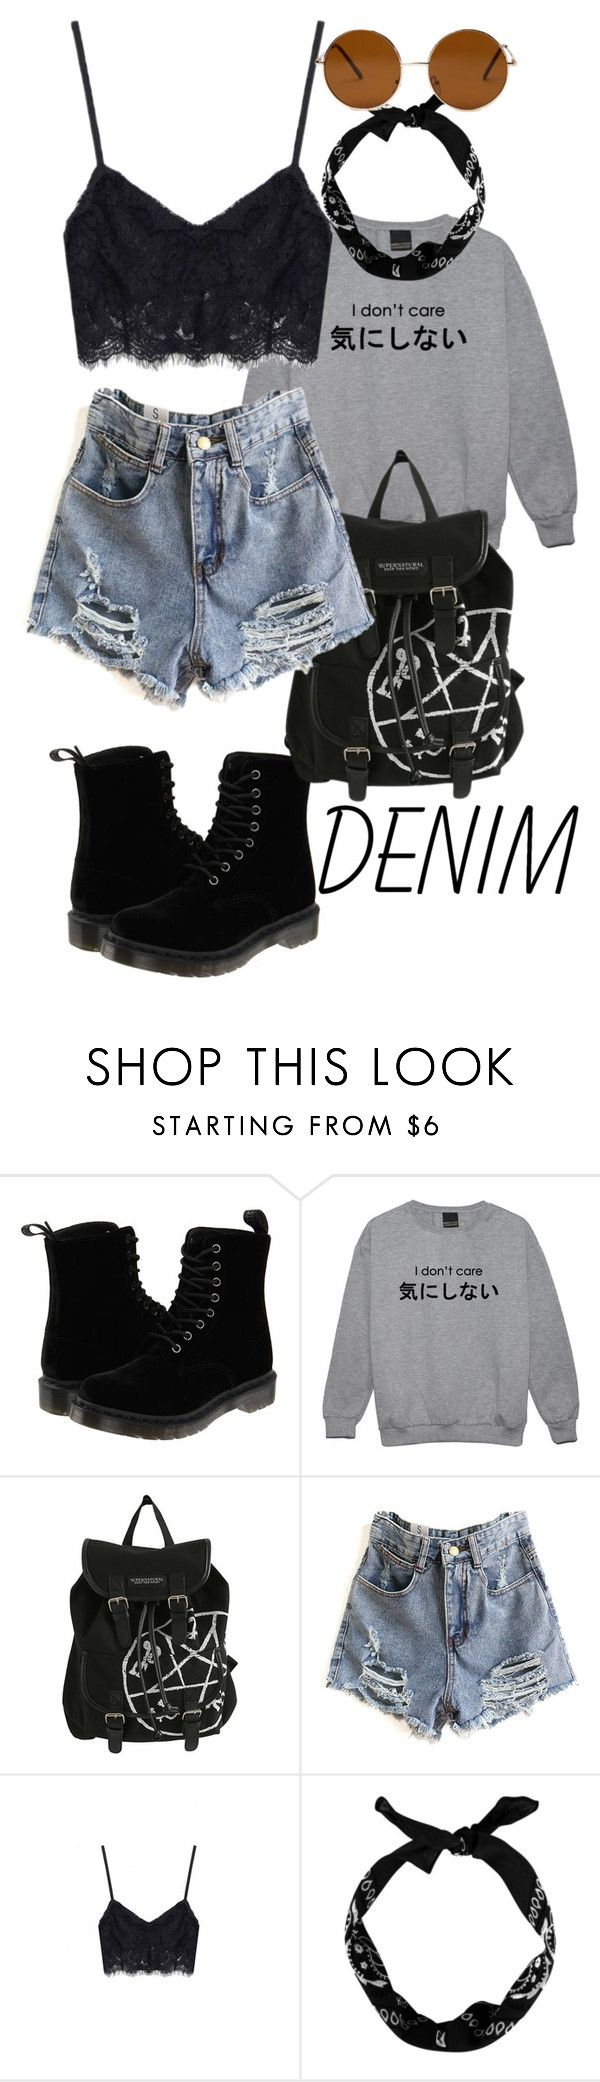 """""""hipster chic"""" by terry-mae ❤ liked on Polyvore featuring Dr. Martens, New Look, Forever 21, denim and distresseddenim"""